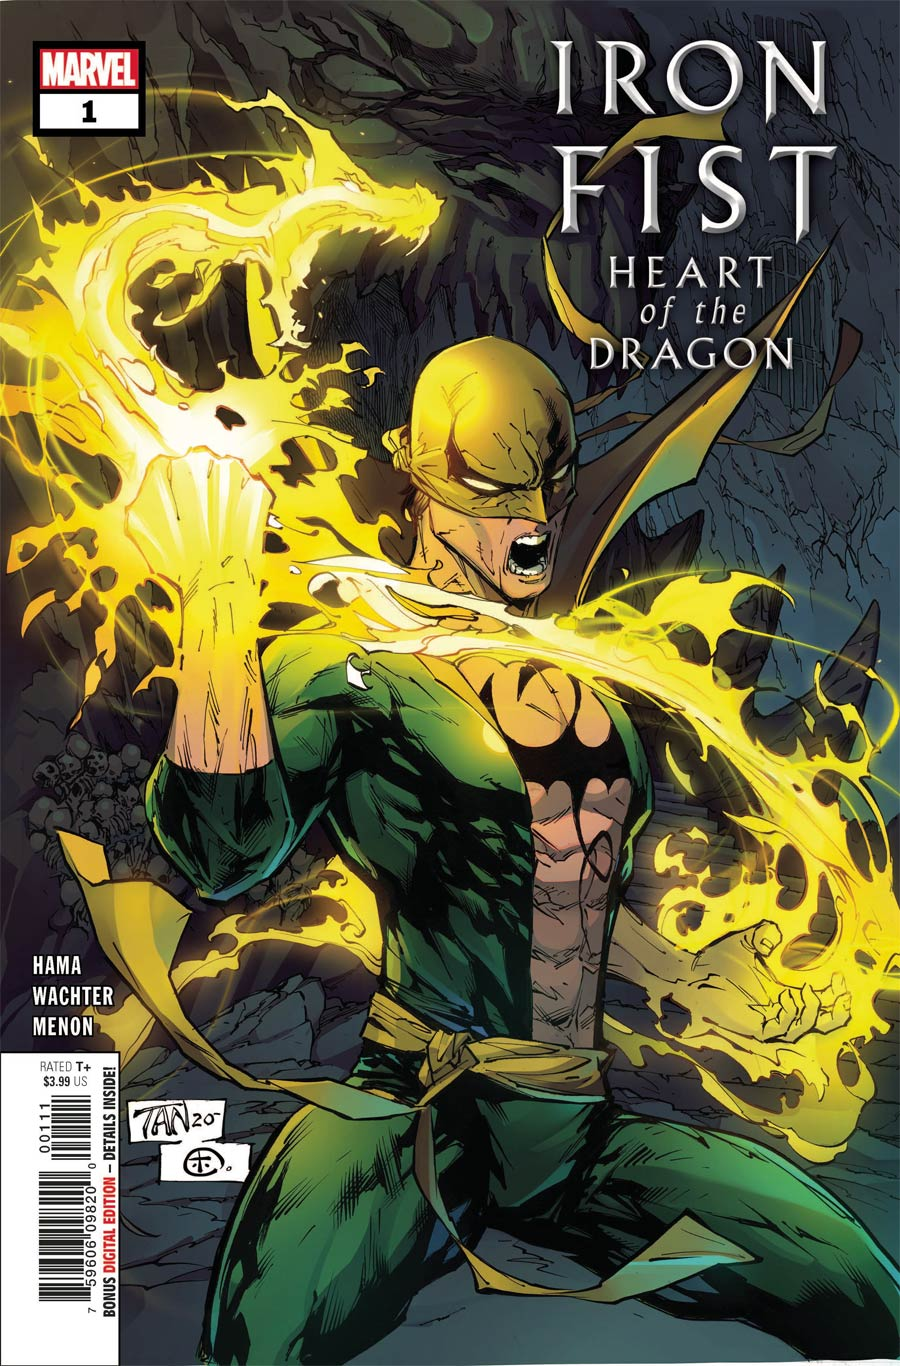 Iron Fist Heart Of The Dragon #1 Cover A Regular Billy Tan Cover (Limit 1 Per Customer)